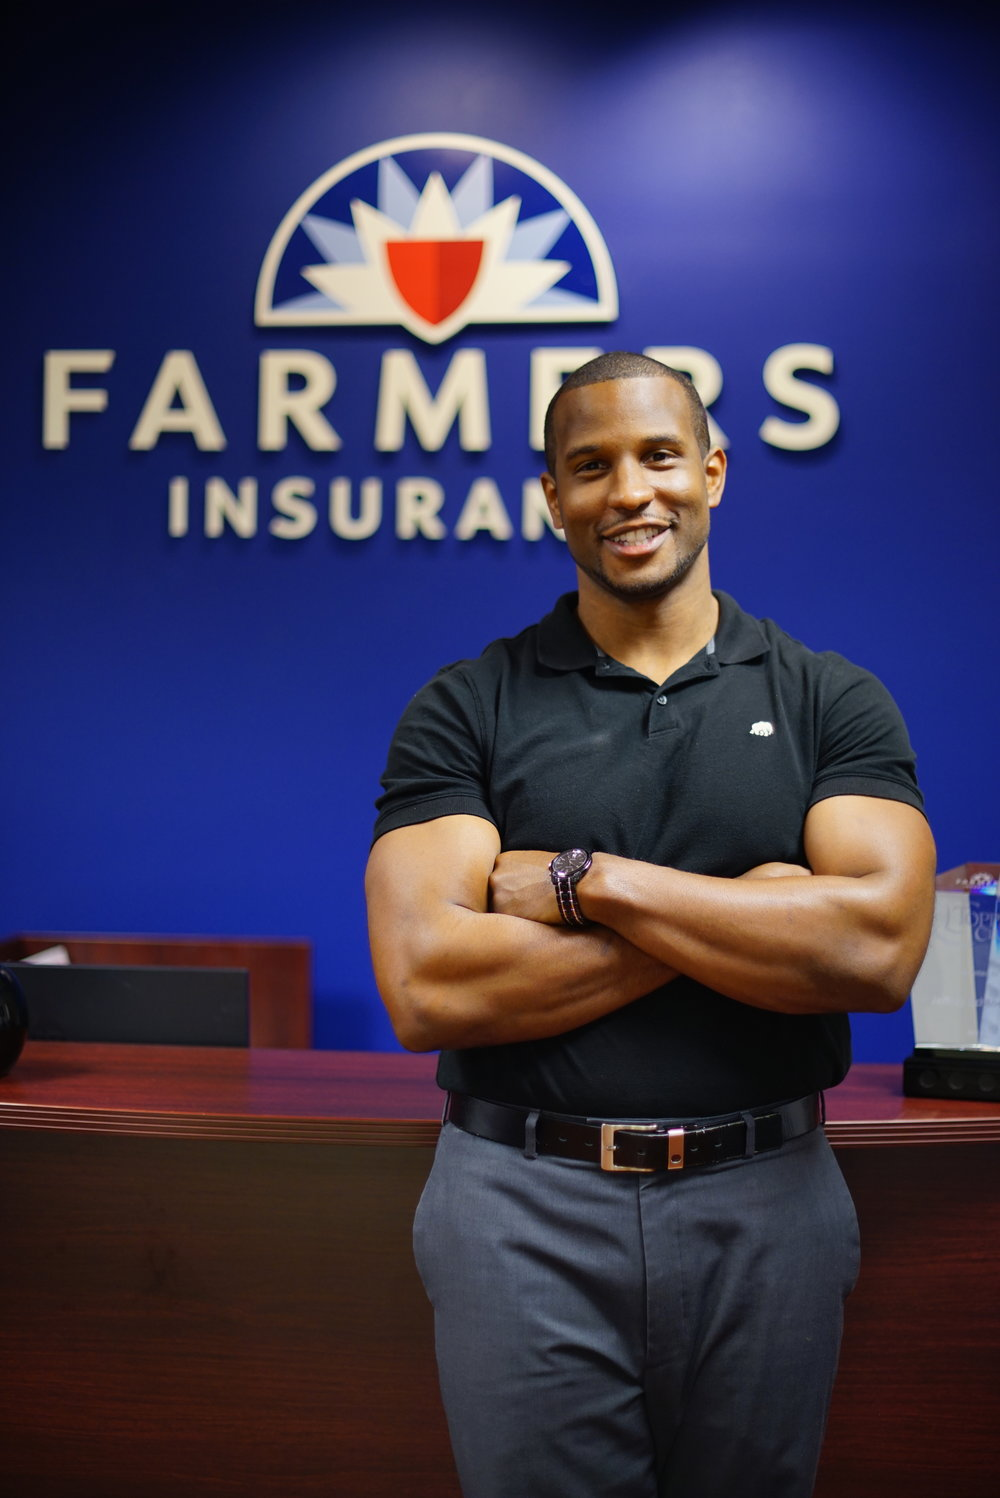 Farmers Insurance Working Portraits